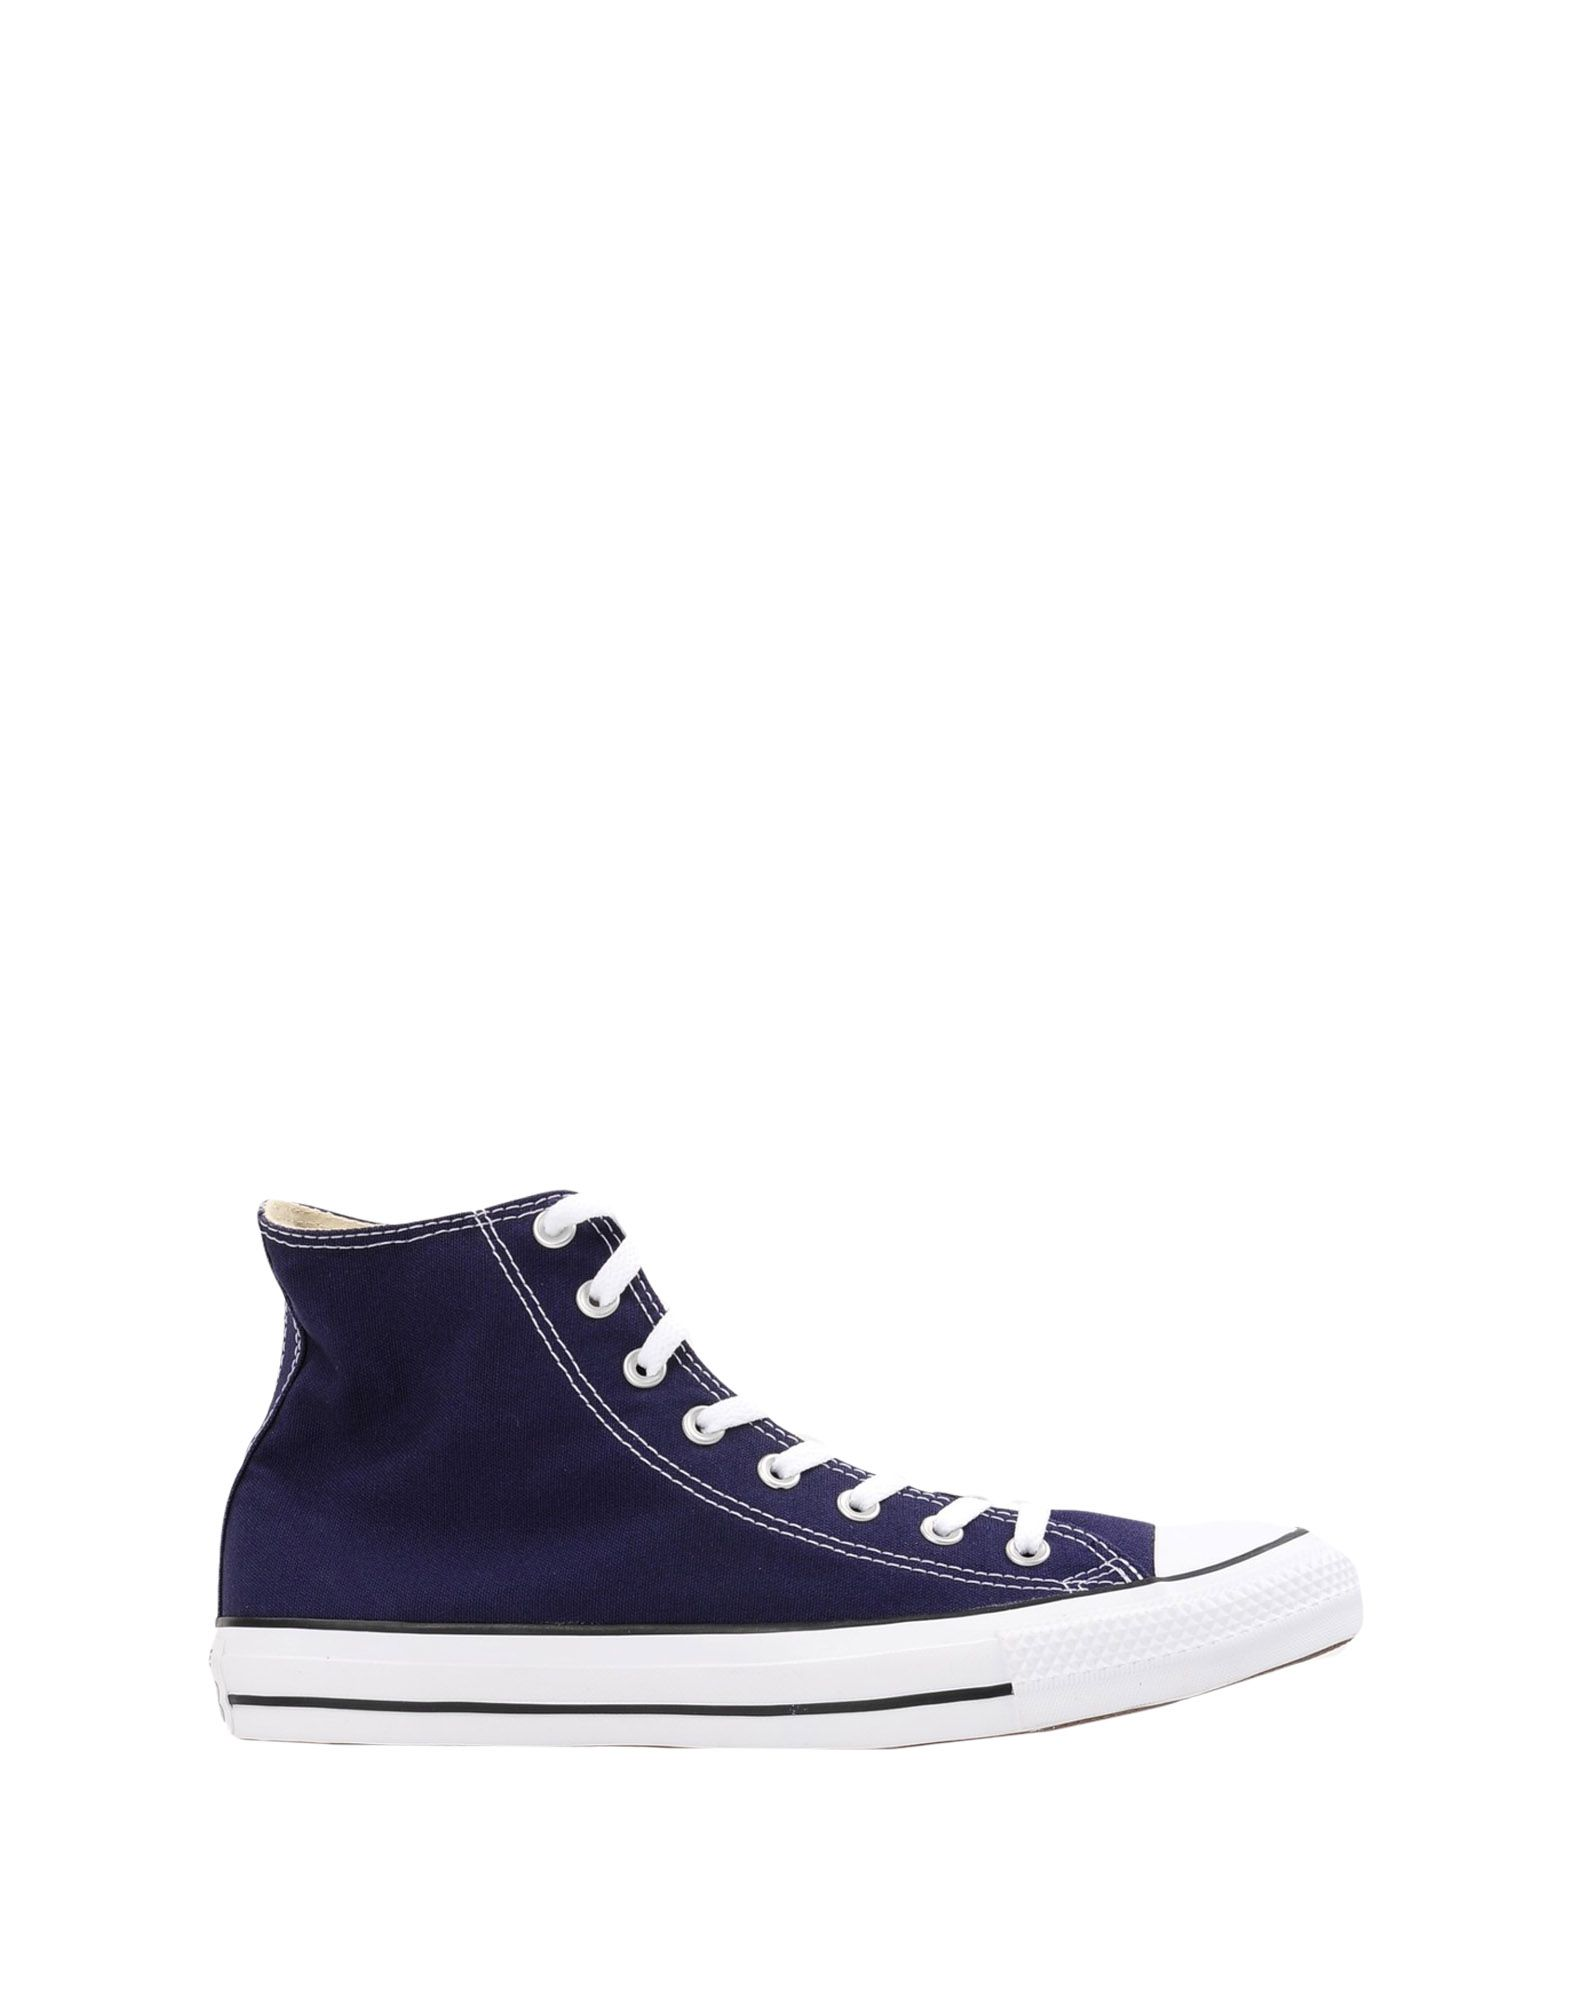 Sneakers Converse All Star Ct As Hi Canvas Seasonal - Homme - Sneakers Converse All Star sur